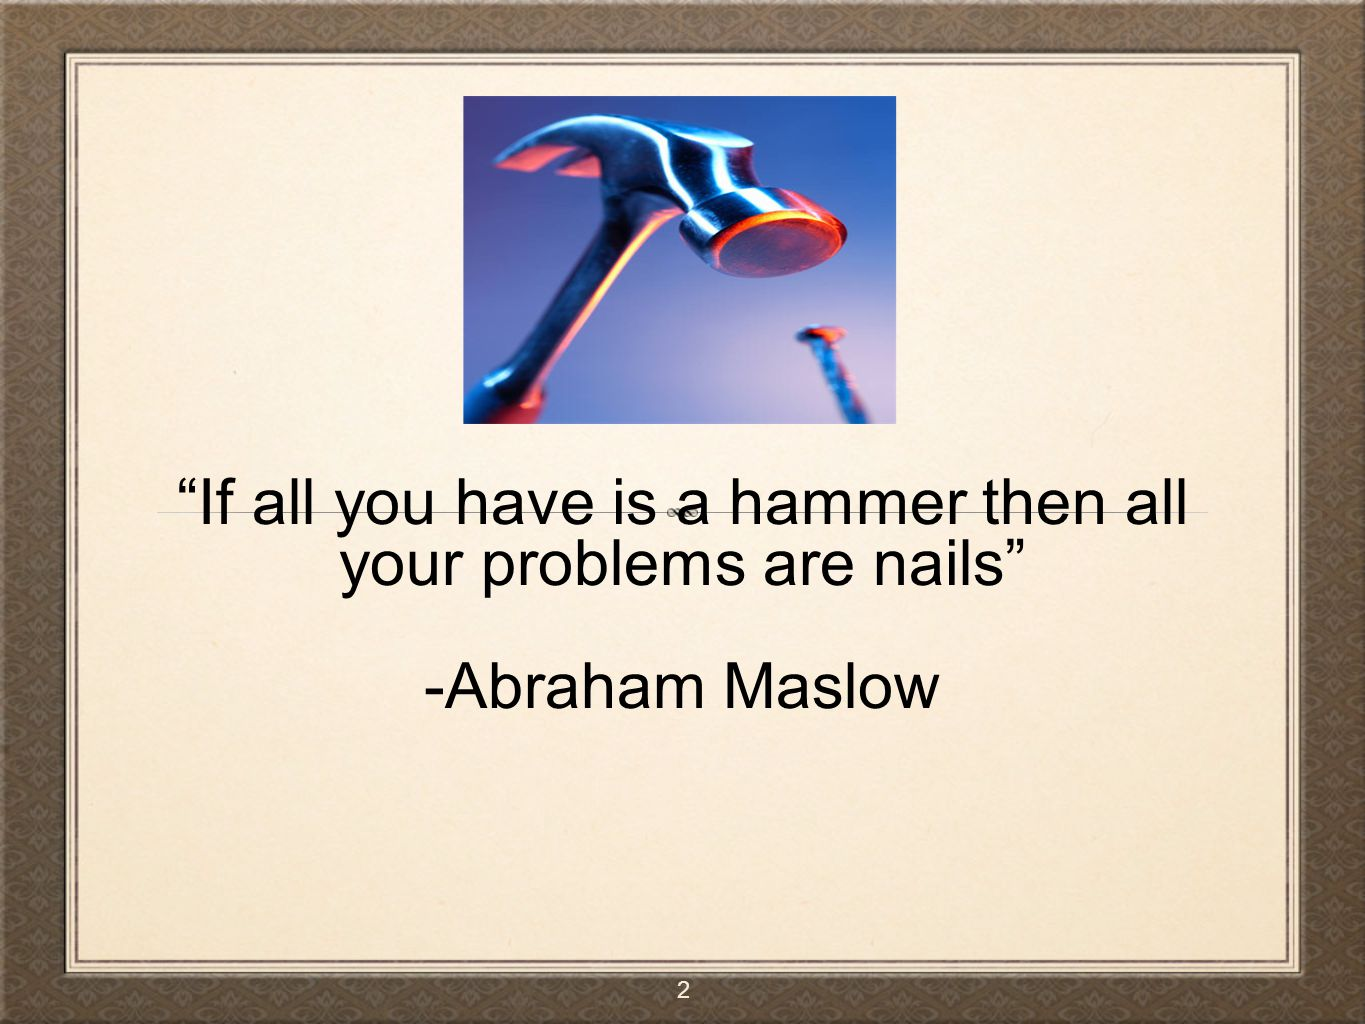 If all you have is a hammer then all your problems are nails -Abraham Maslow